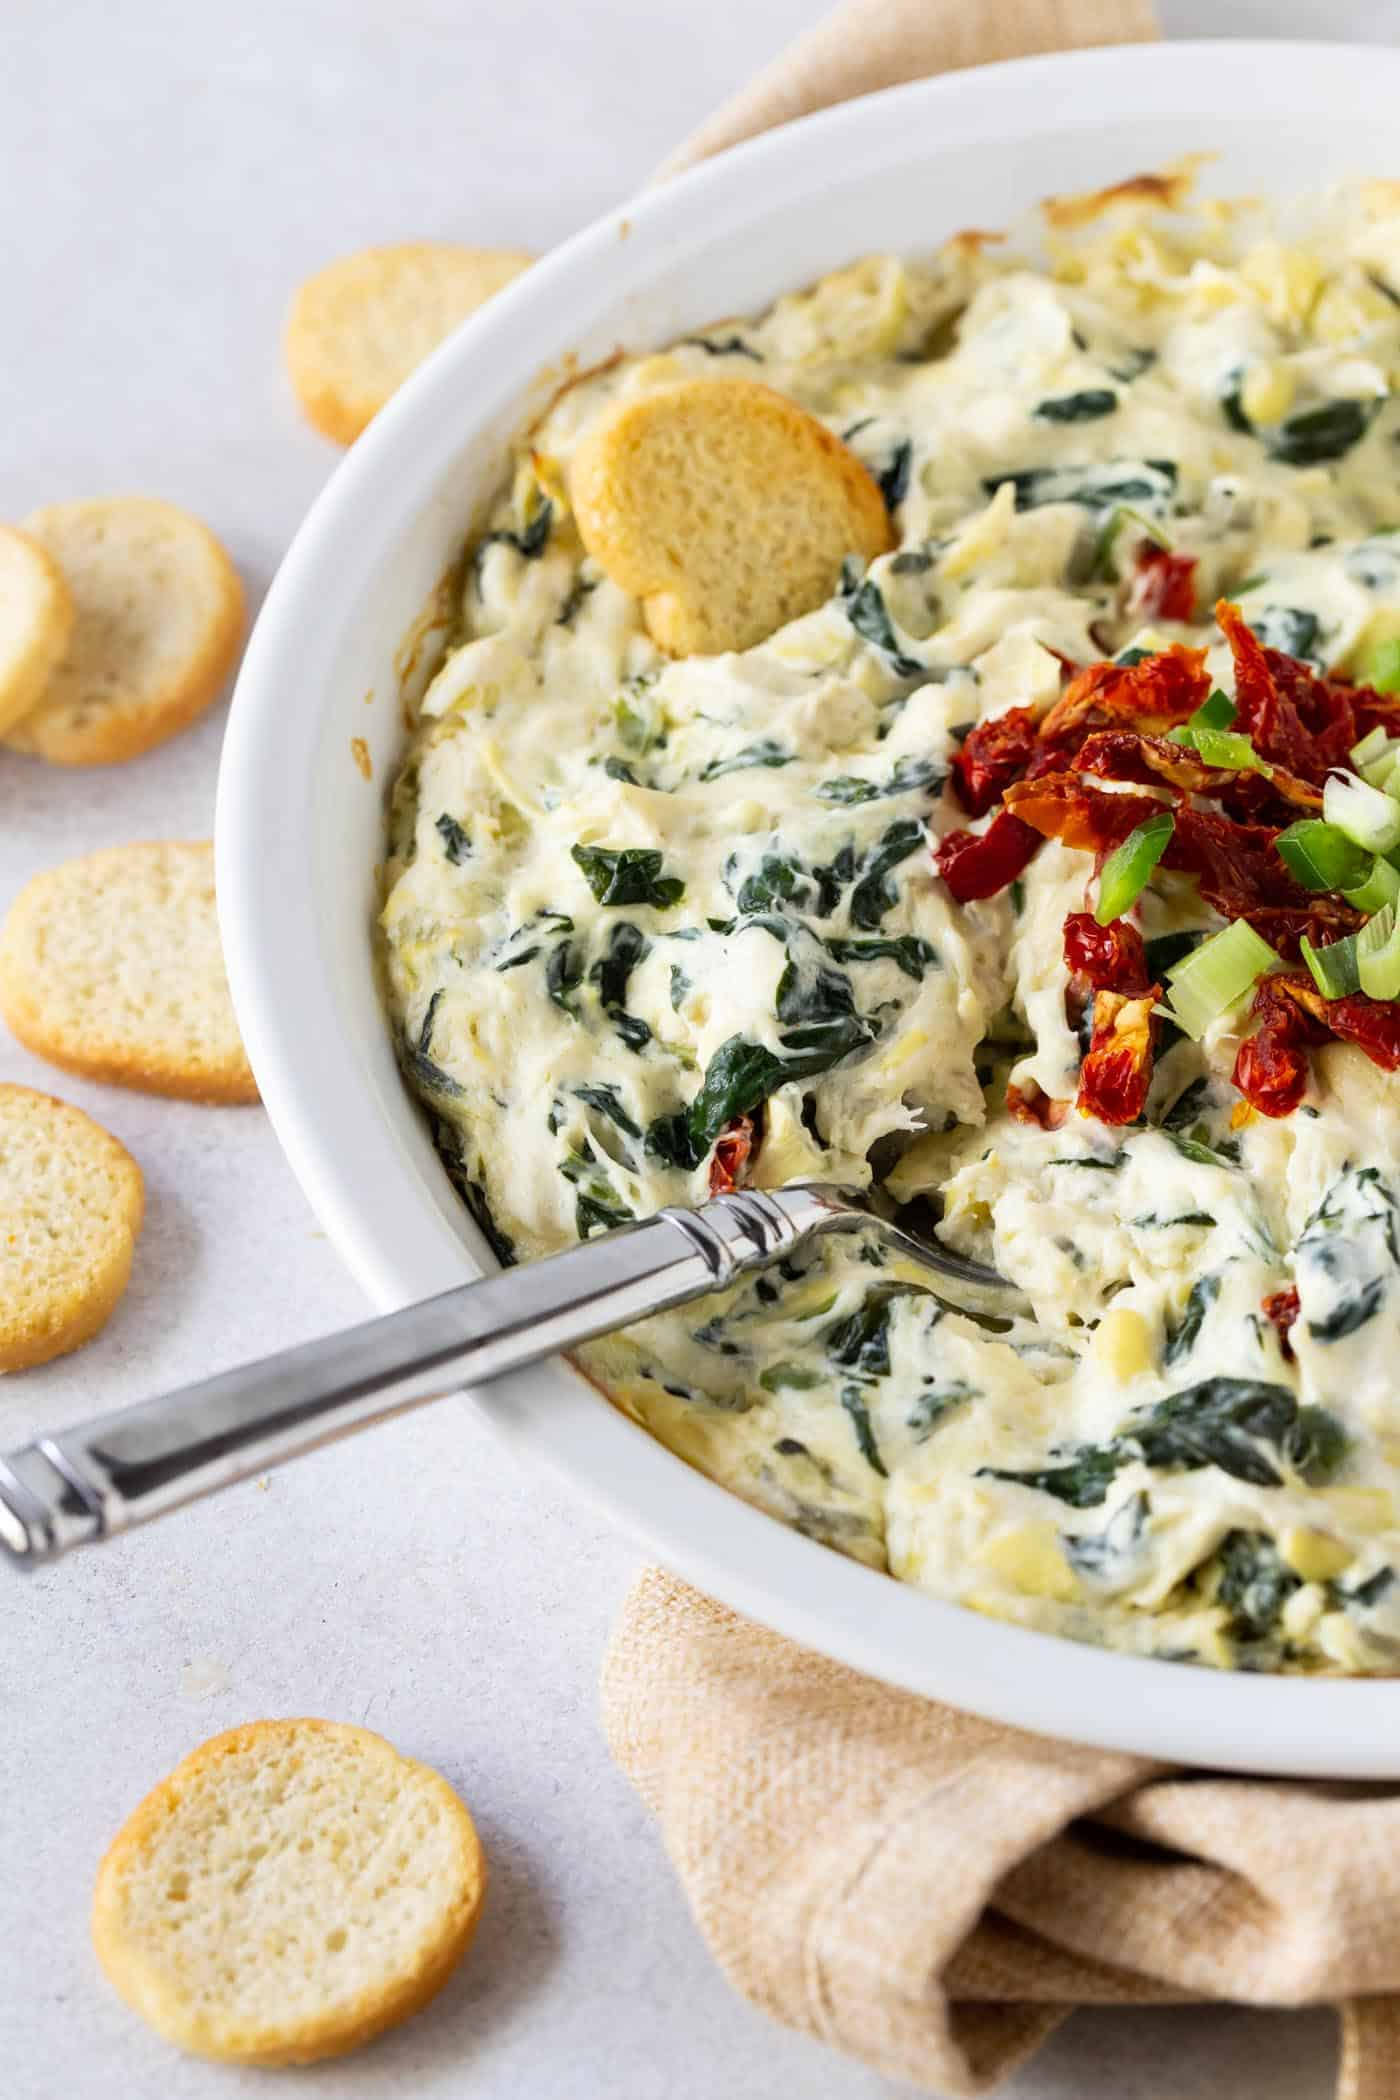 3/4 image of Hot Cheesy Artichoke Crab Dip in white pie plate, garnished with sun-dried tomatoes, shopped green onion and fresh jalapeno on a white background.